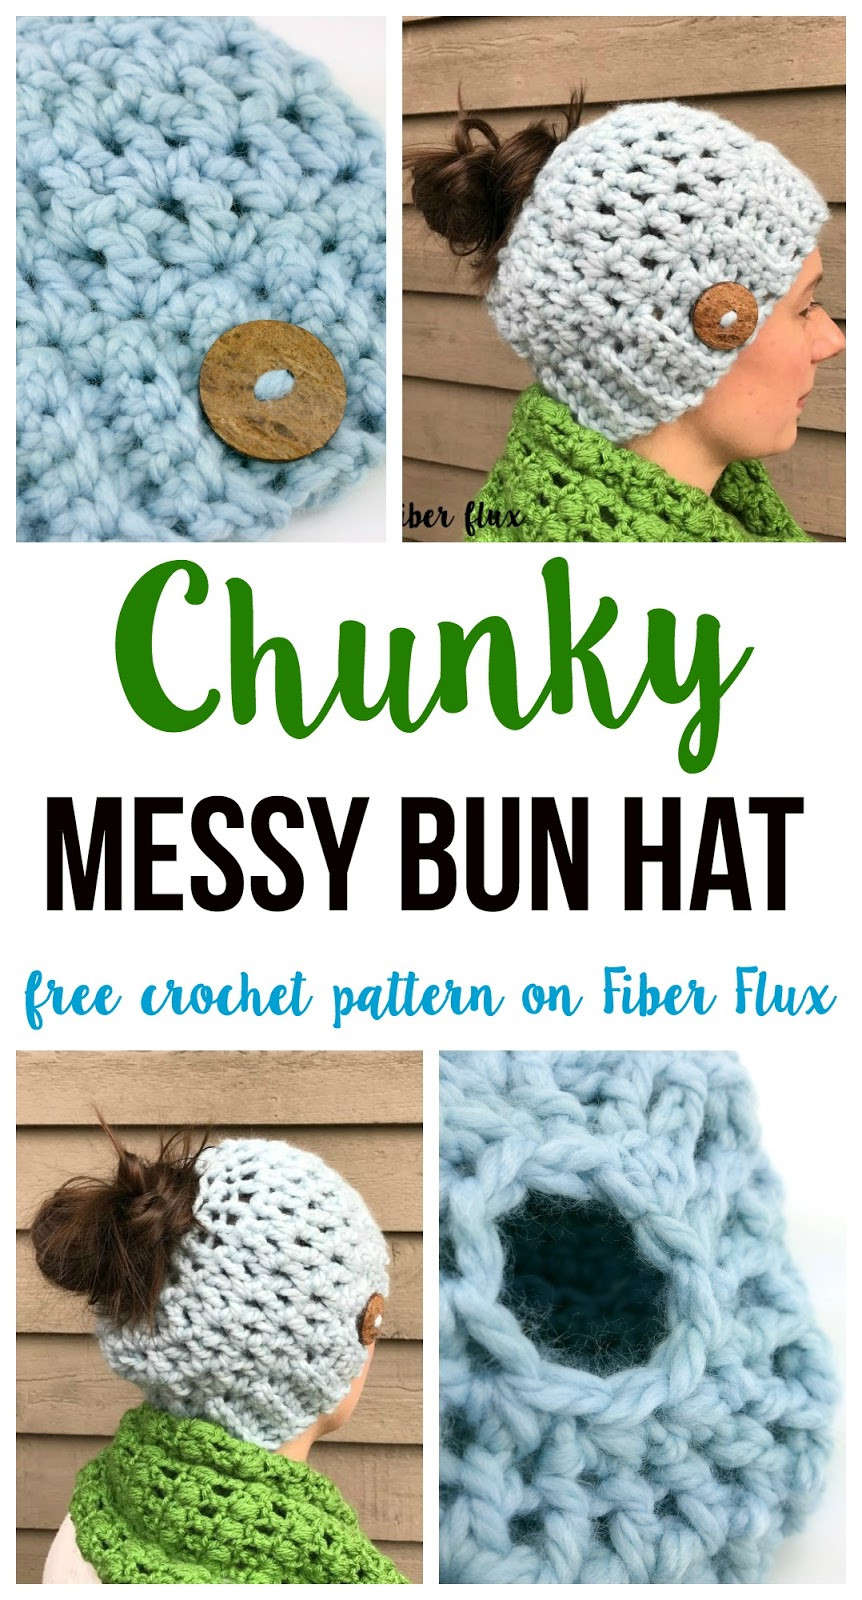 Best Of Free Crochet Pattern Chunky Messy Bun Hat Free Crochet Pattern for Messy Bun Hat Of Beautiful 47 Ideas Free Crochet Pattern for Messy Bun Hat